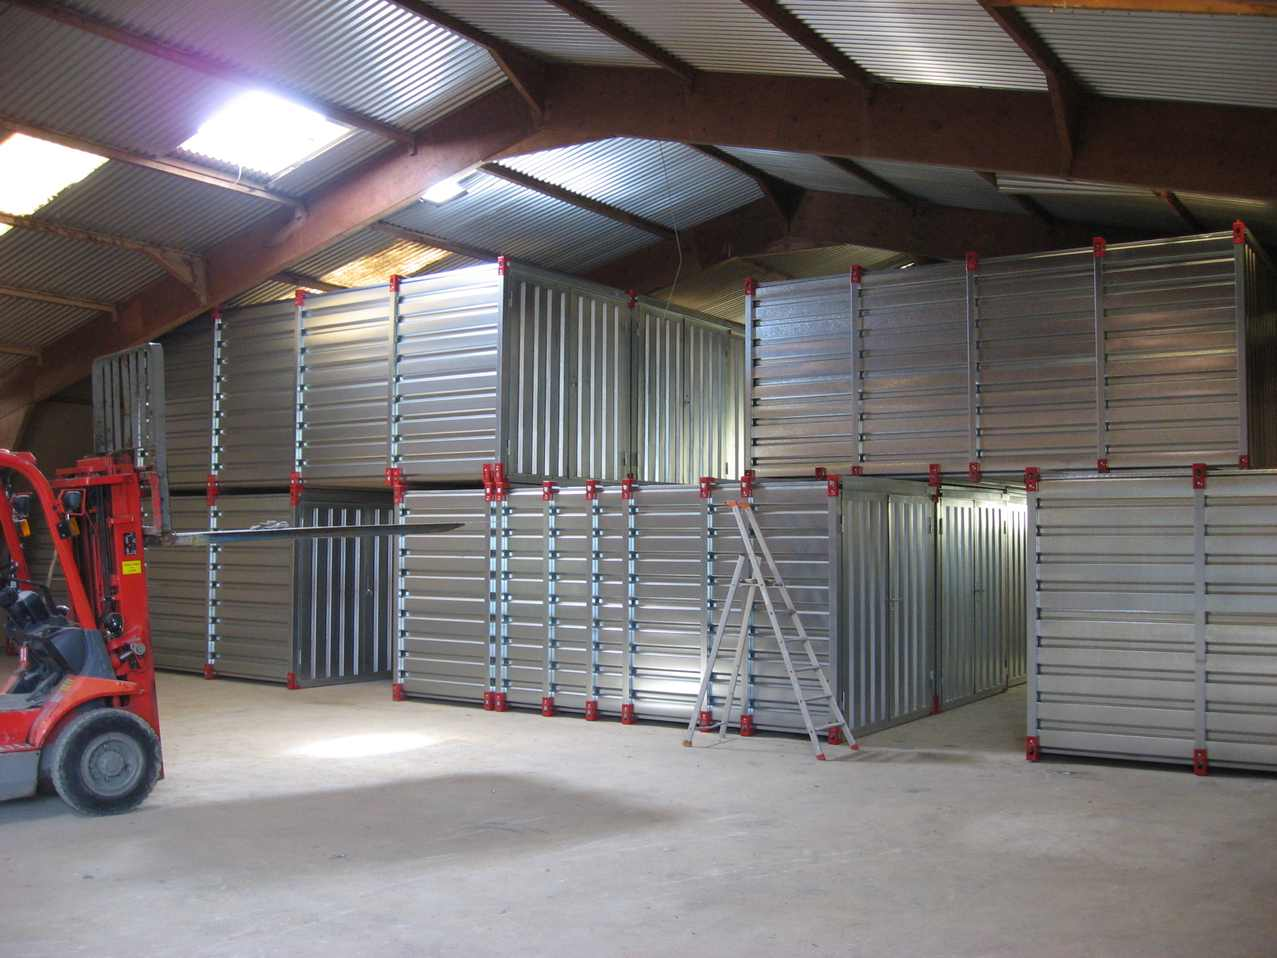 Create your own Combination of Containers to Build a Unique Storage Unit